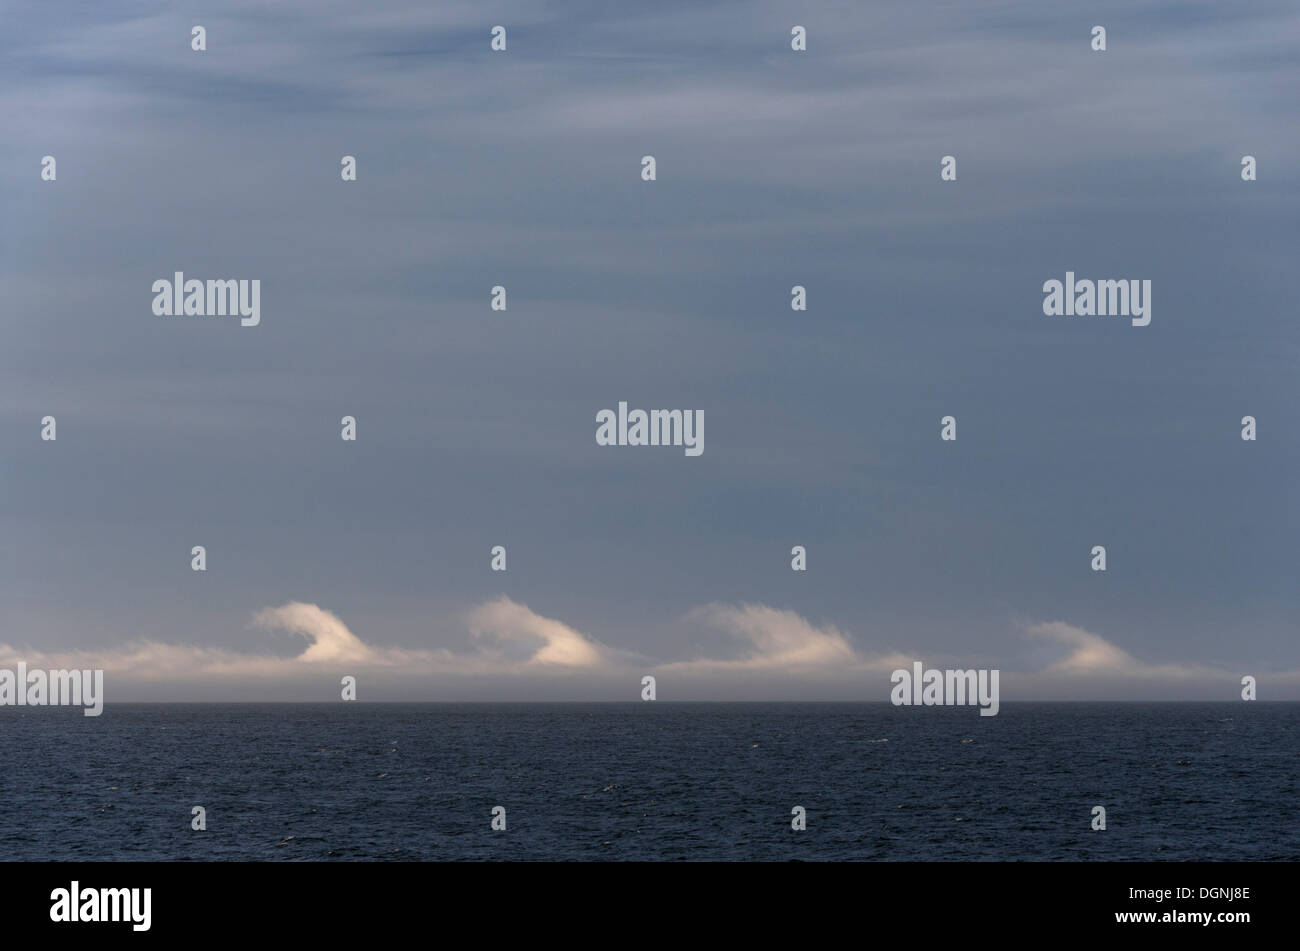 Kelvin-Helmholtz instability, clouds over the sea, Drake Passage, Argentina - Stock Image